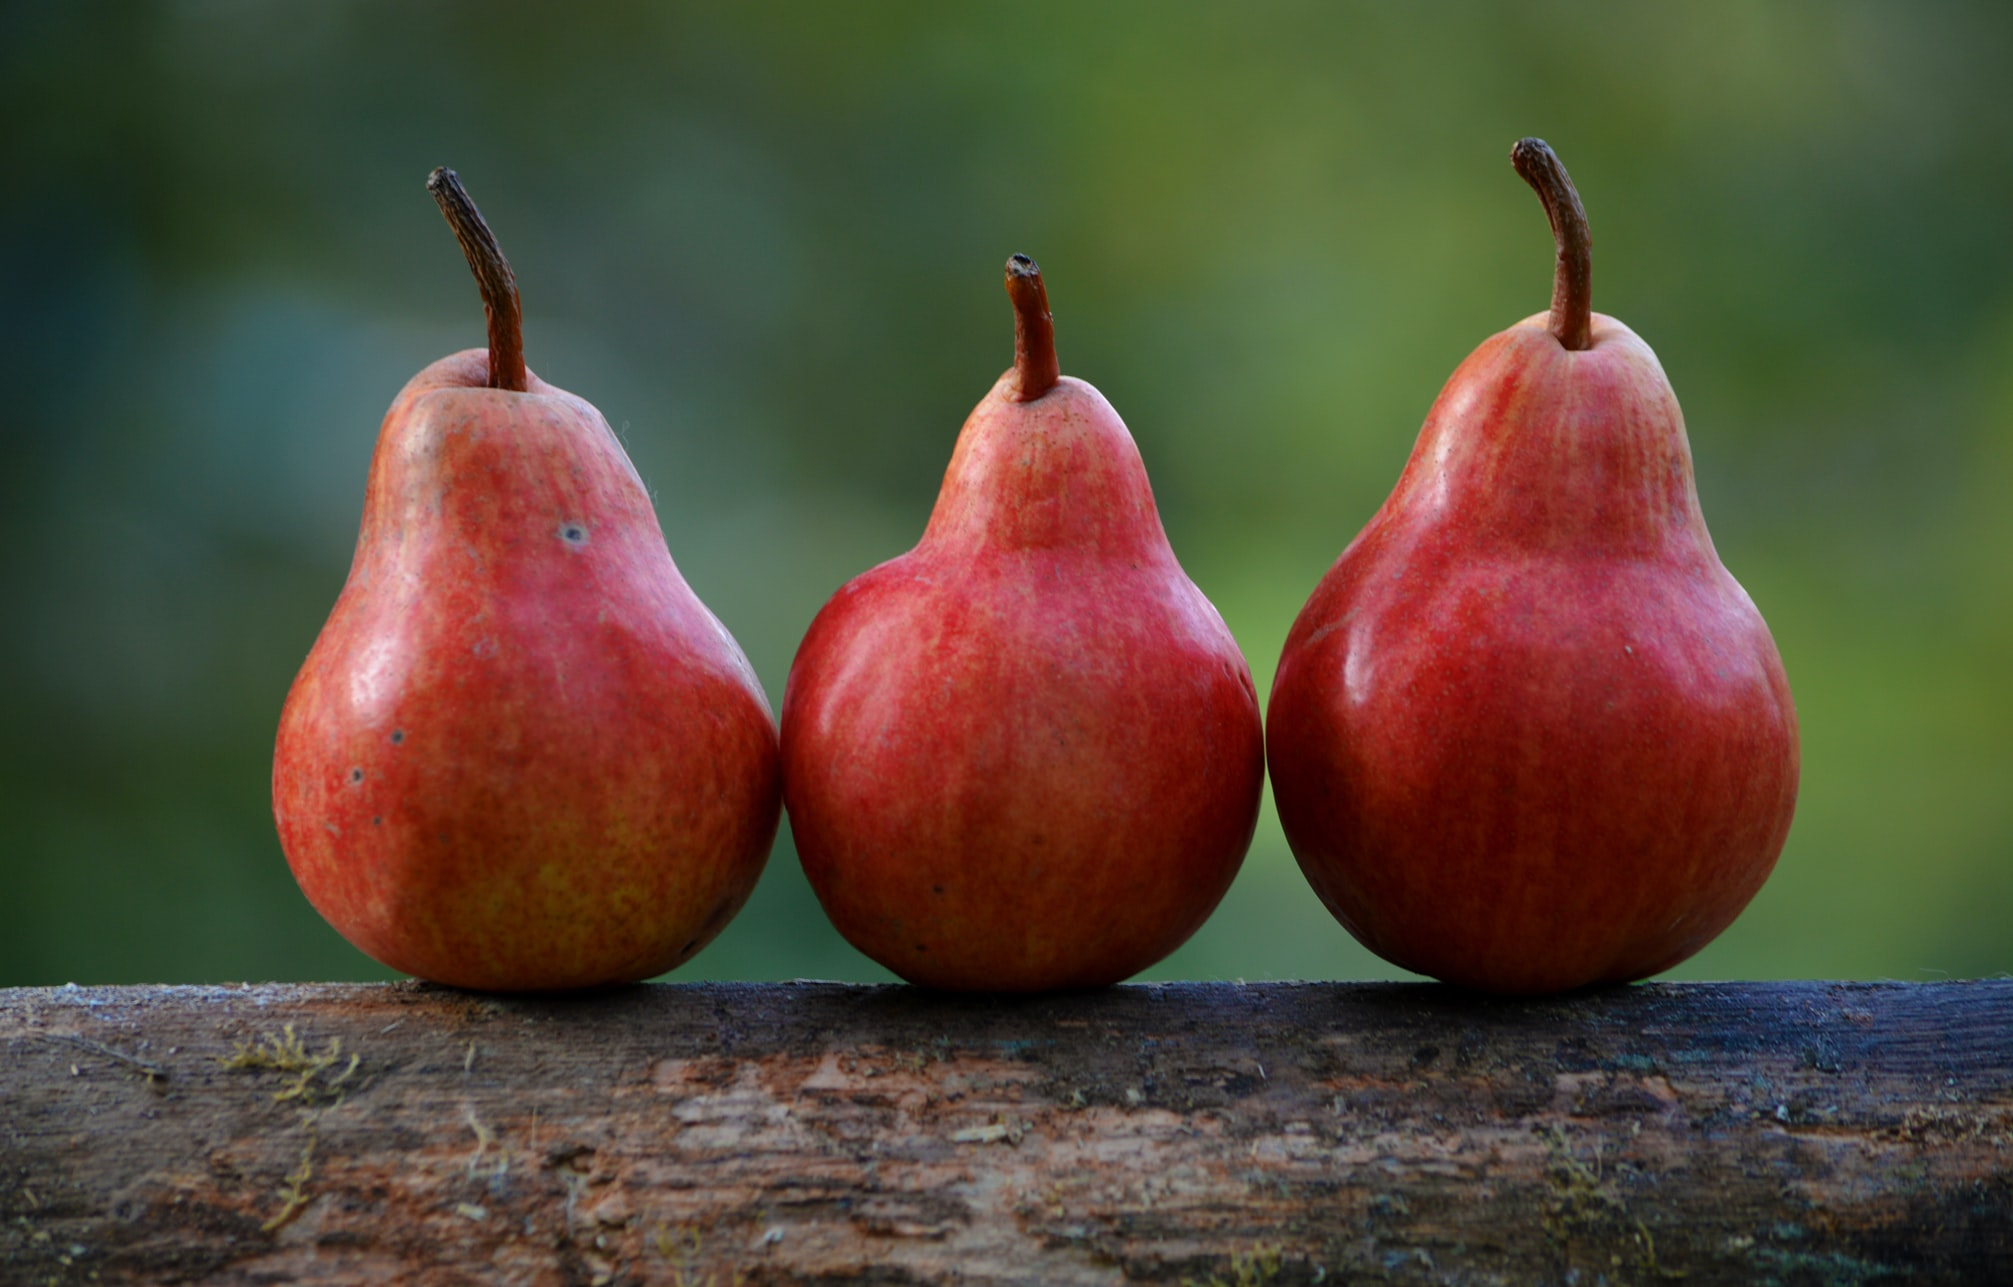 Three red pears on a ledge outside